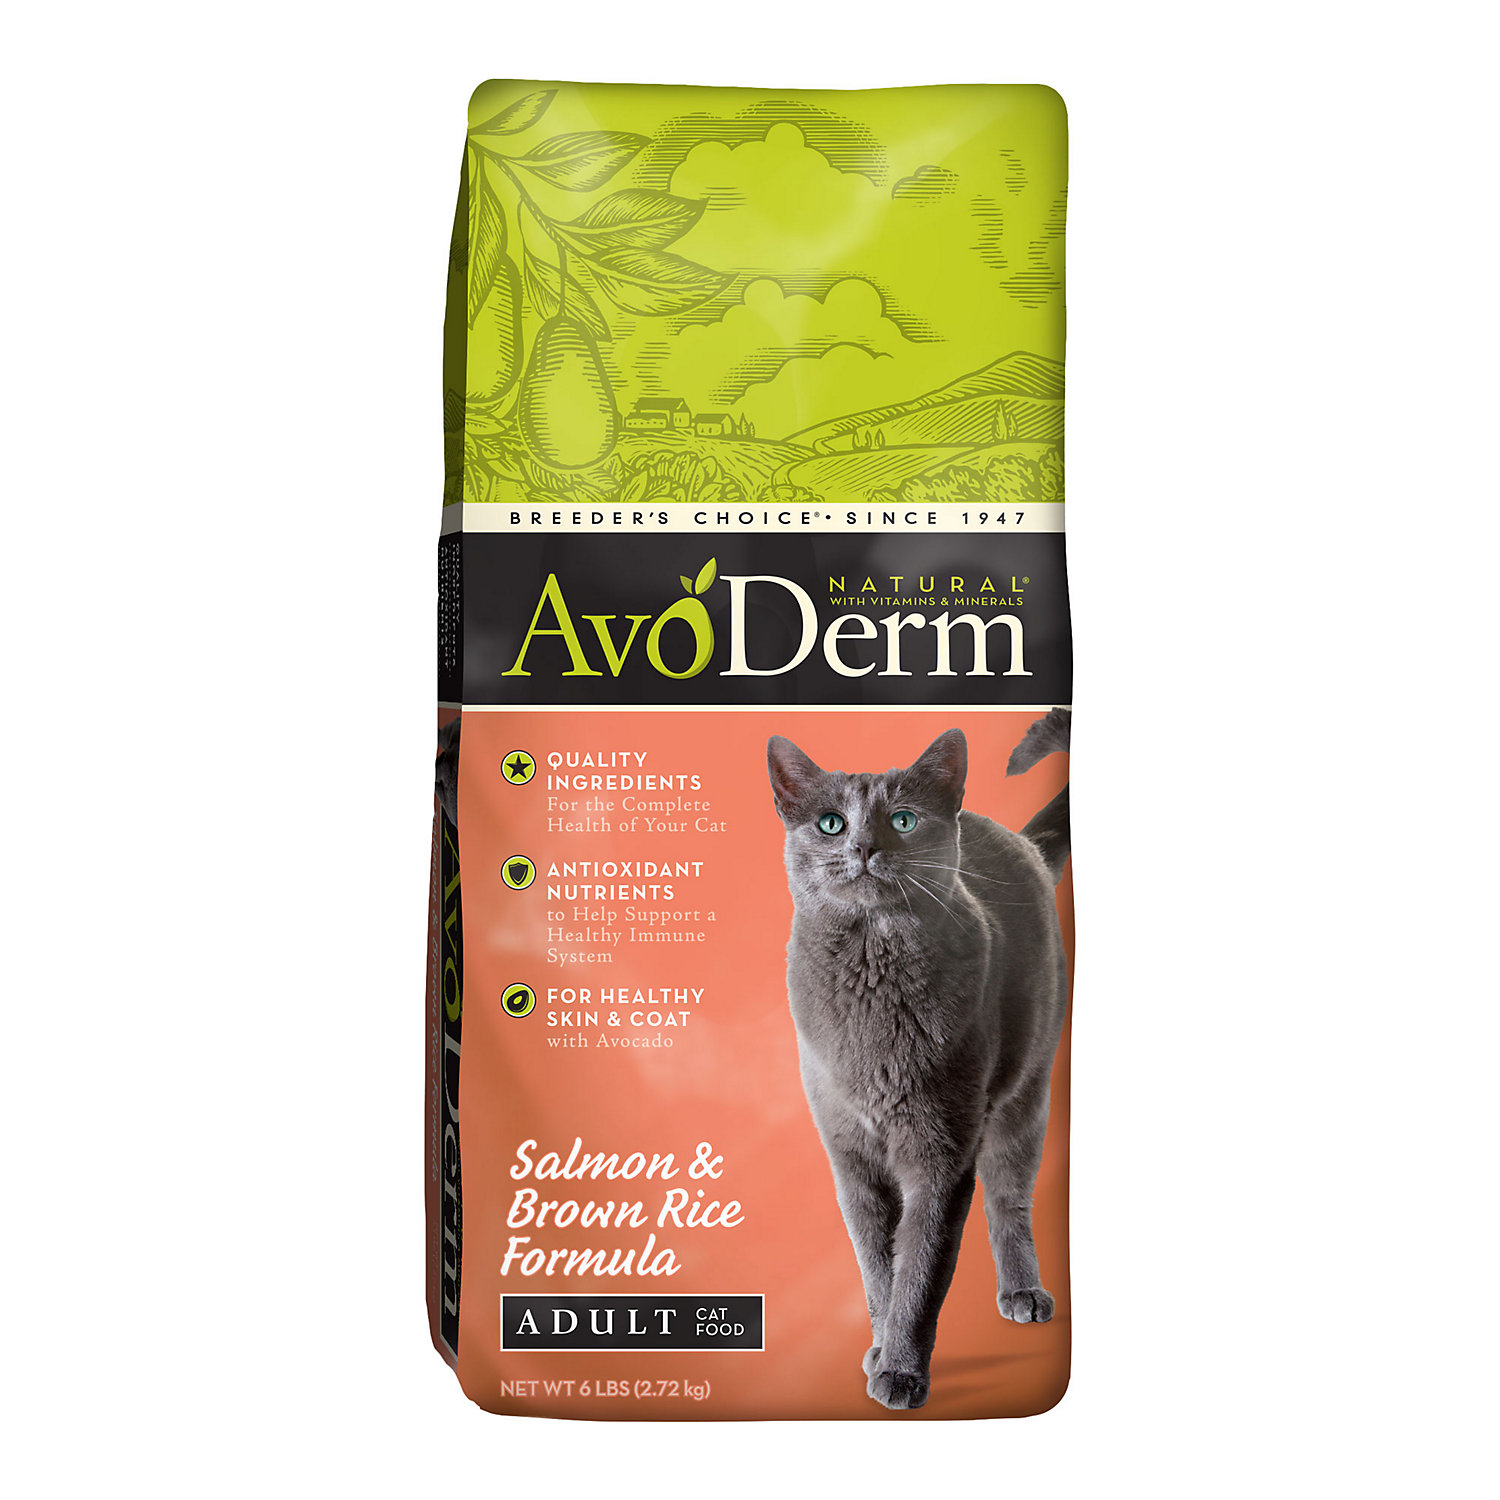 Avoderm Natural Chicken Formula Canned Cat Food